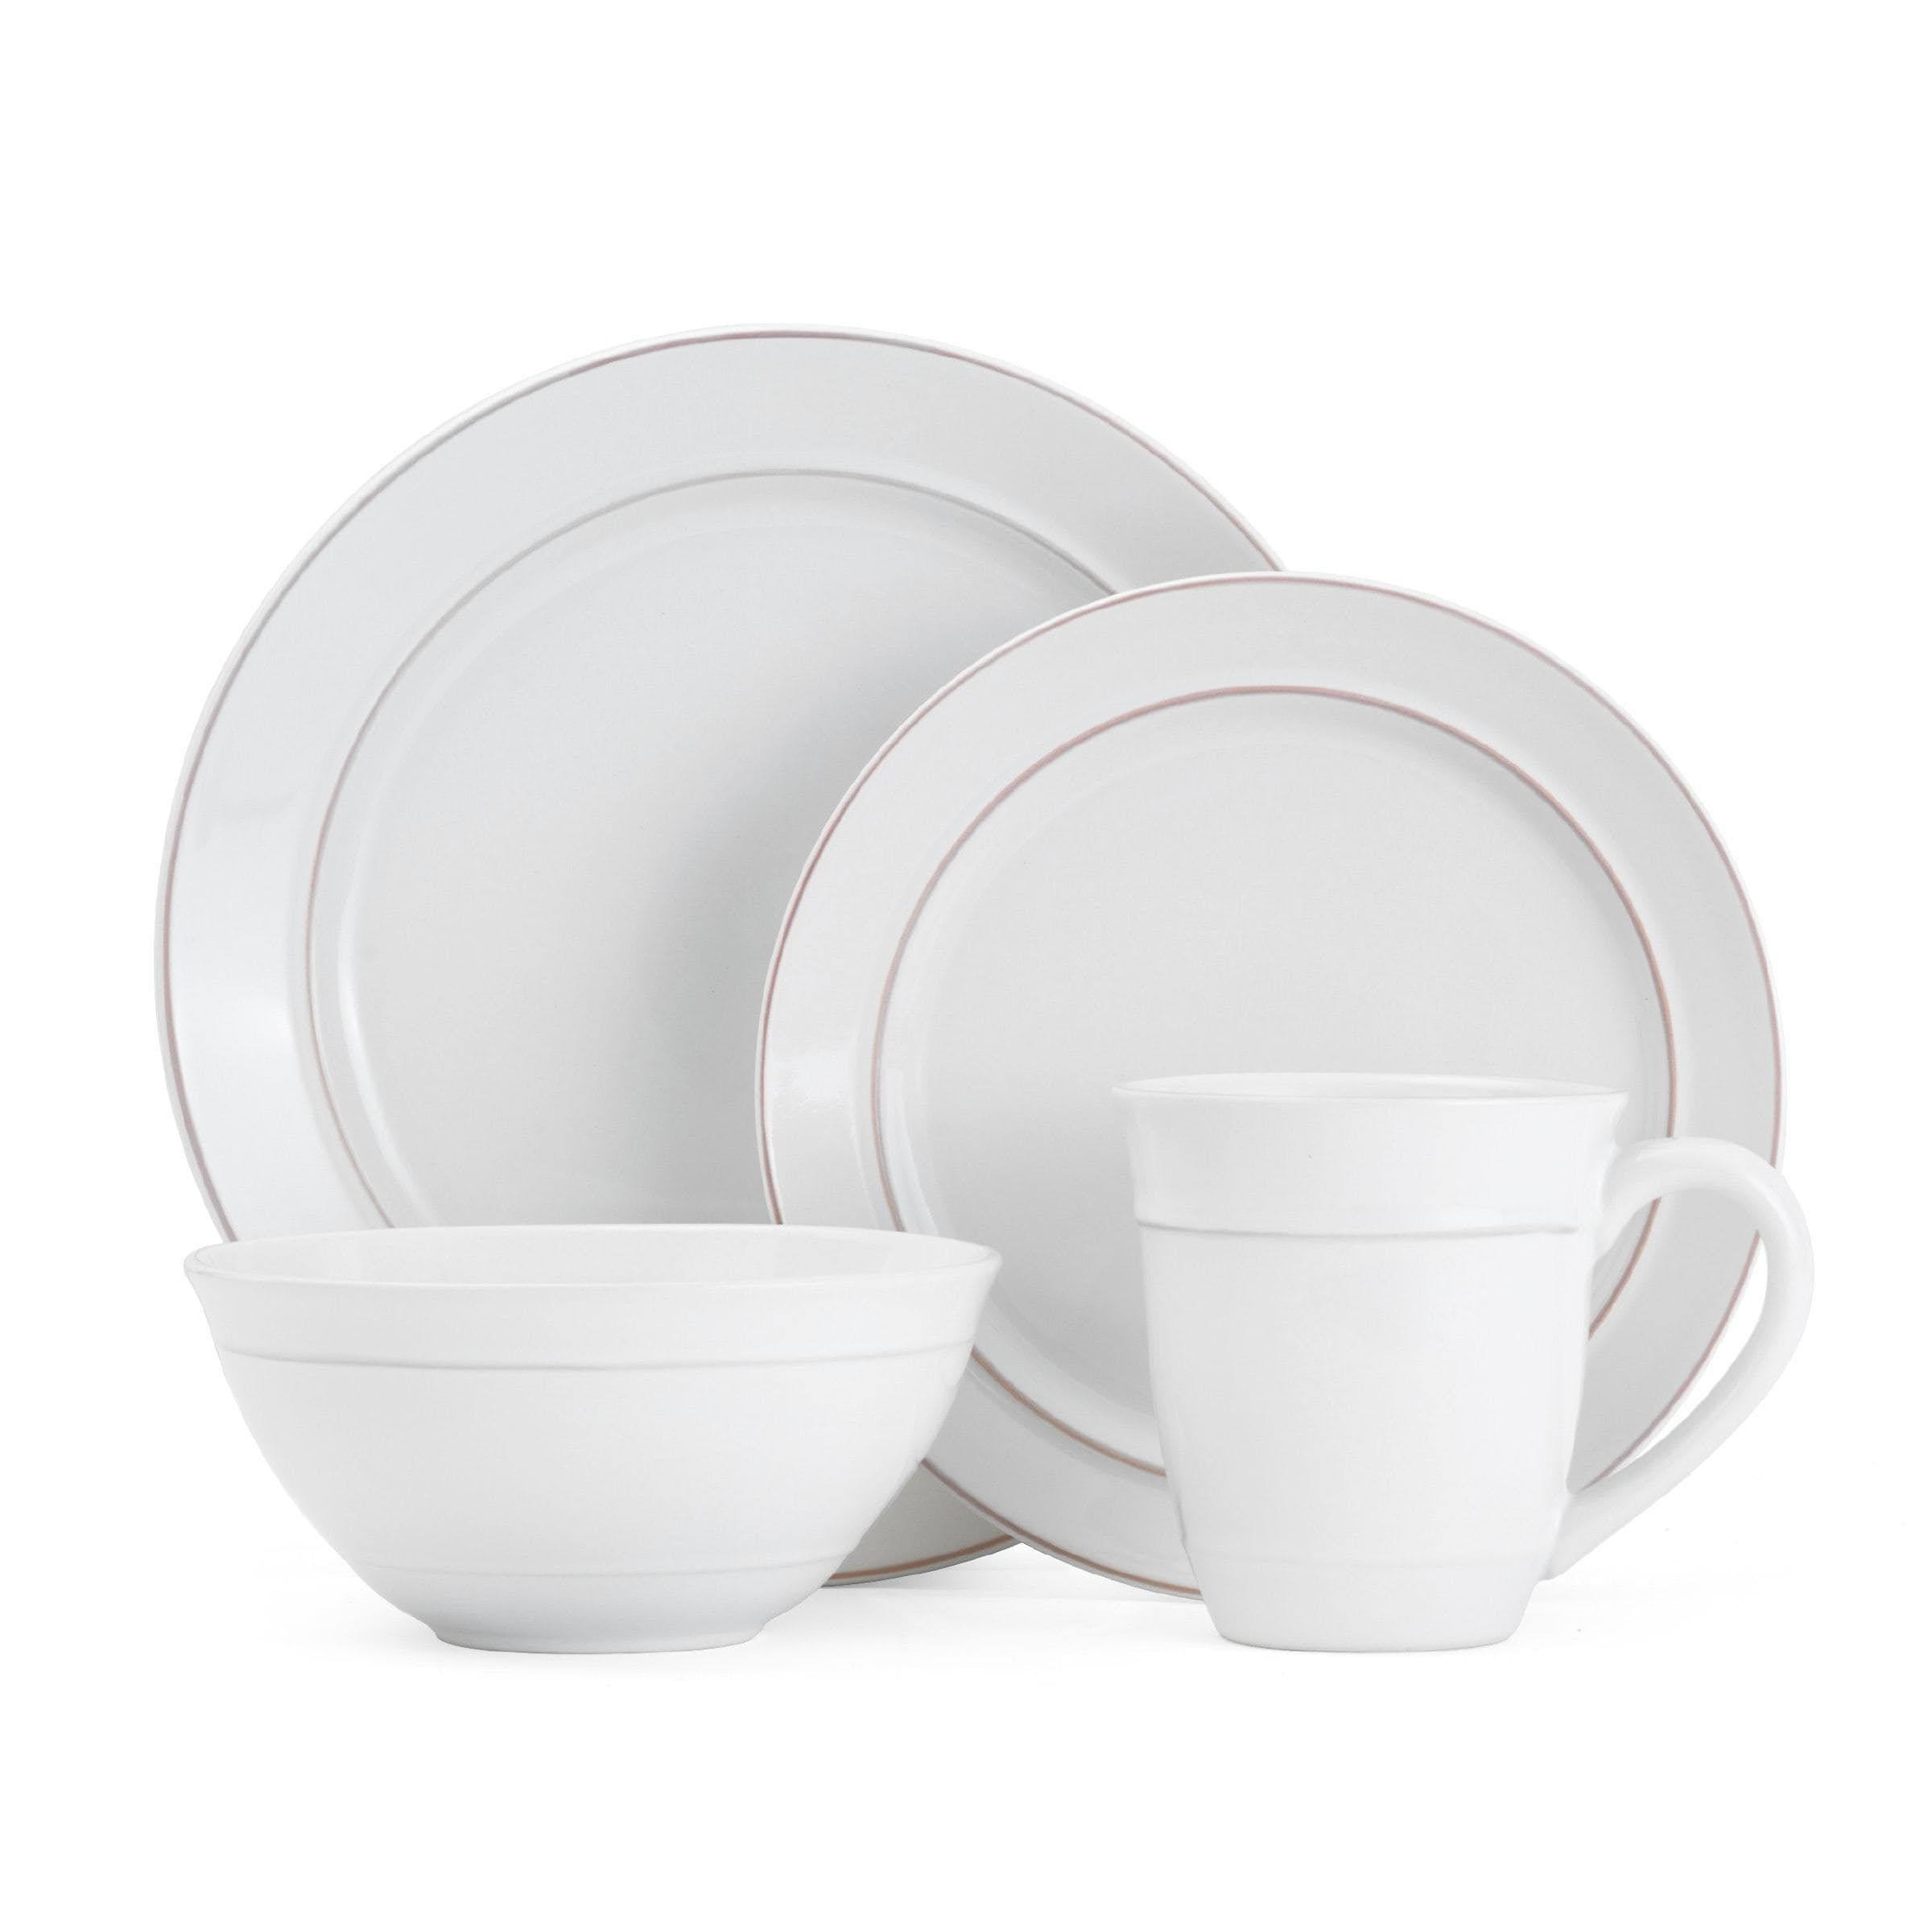 Mikasa Aubrey Solid White 16-piece Dinnerware Set | Overstock.com Shopping - The Best Deals on Casual Dinnerware  sc 1 st  Pinterest & Mikasa Aubrey Solid White 16-piece Dinnerware Set | Overstock.com ...